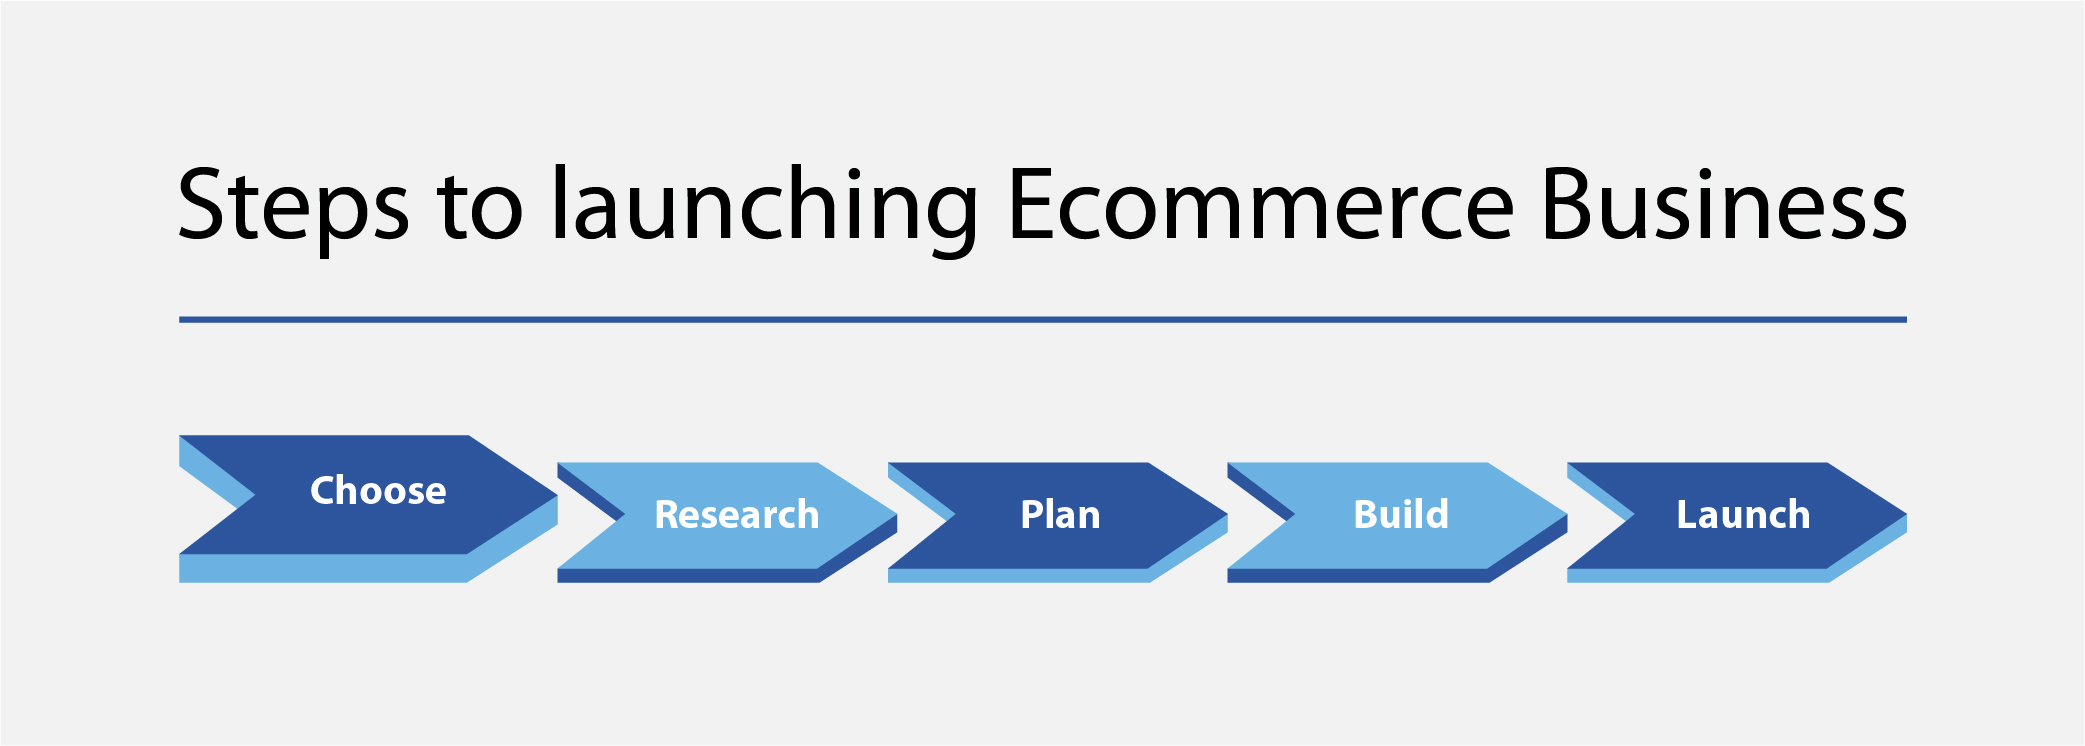 Steps to Launching and eCommerce Business